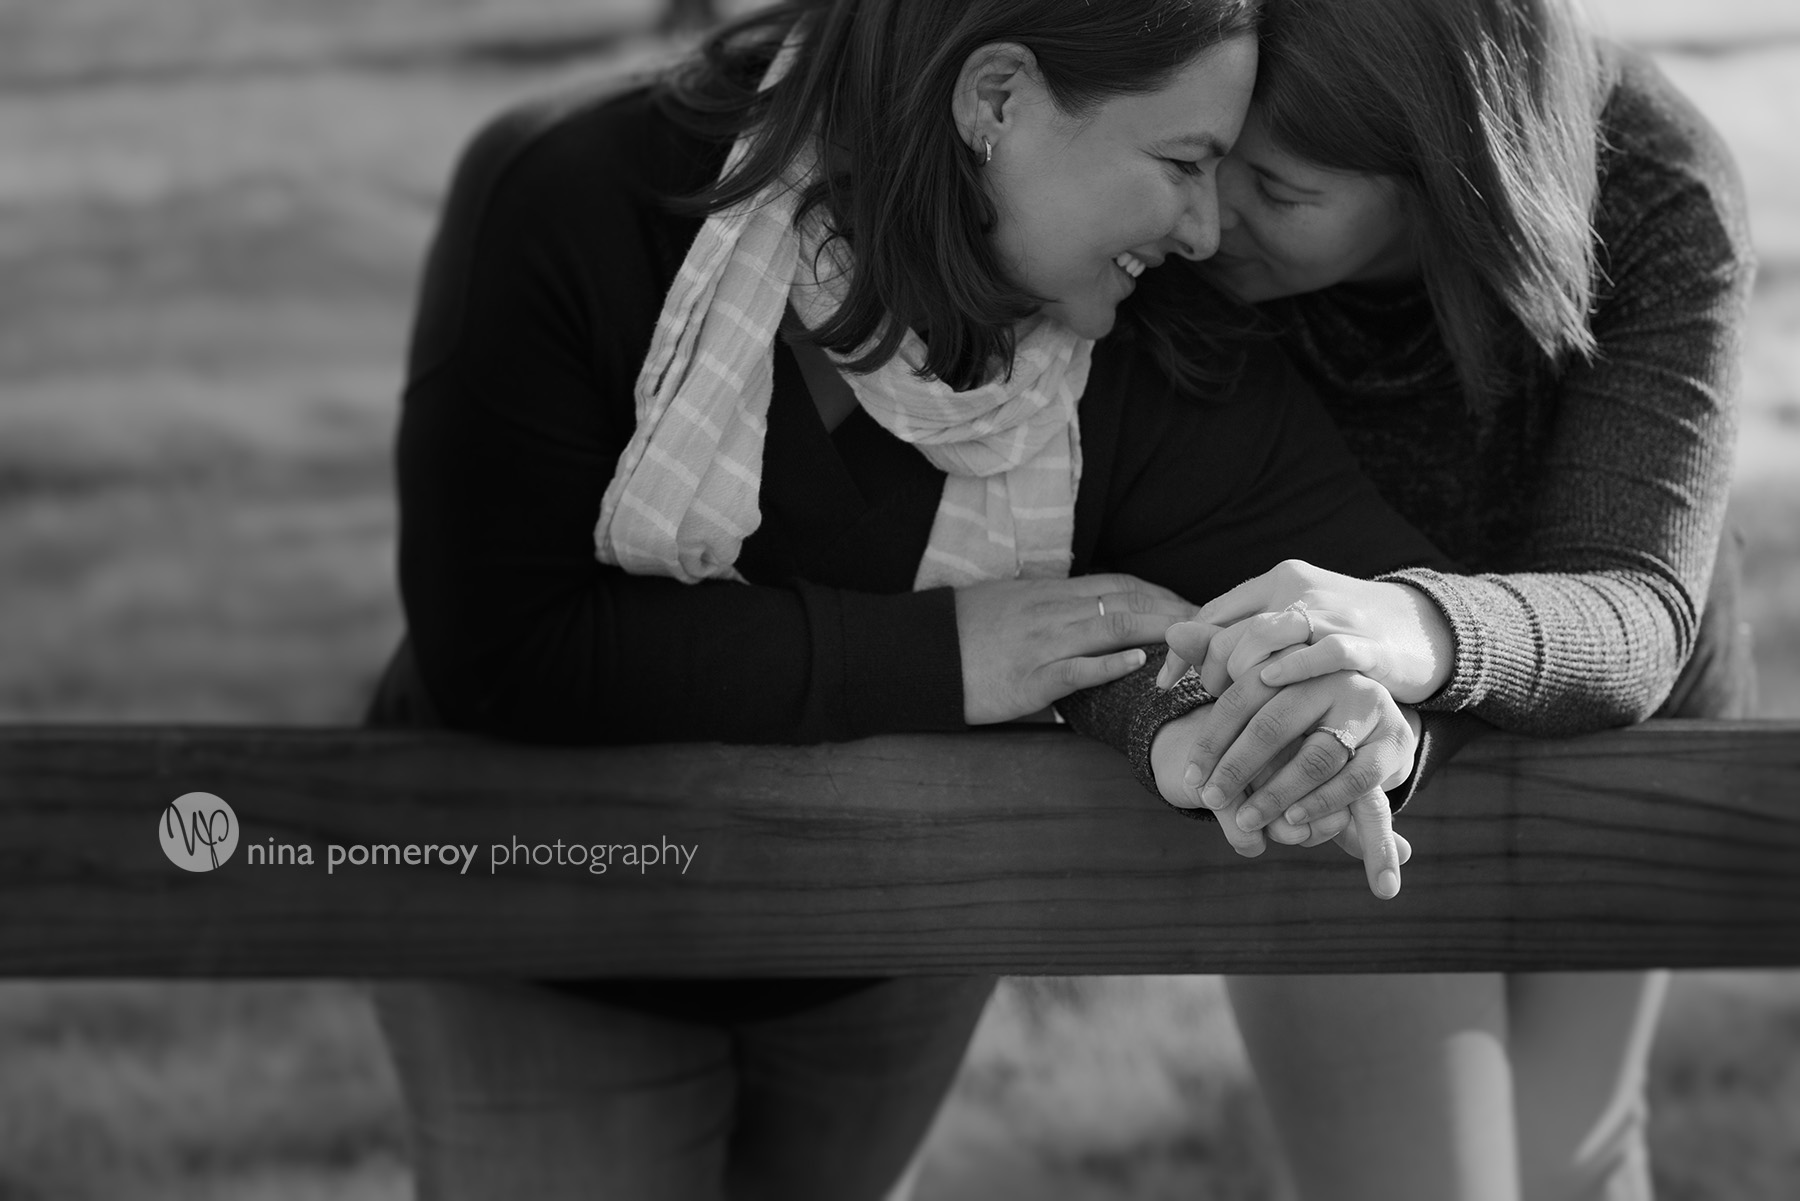 Gay Engagement Portrait Photography by Nina Pomeroy in San Ramon